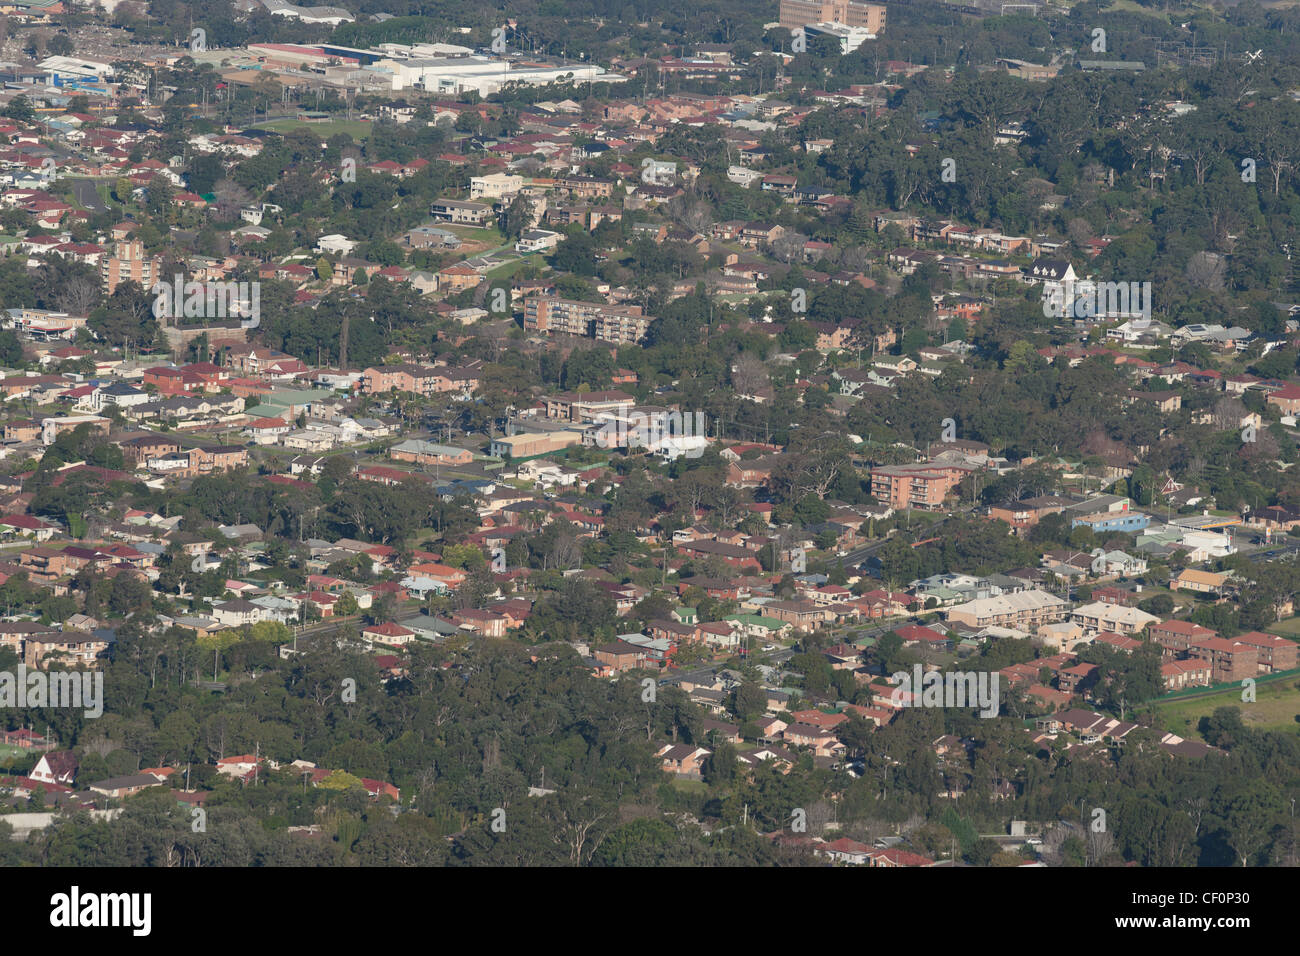 looking down onto wollongong city and suburbs - Stock Image